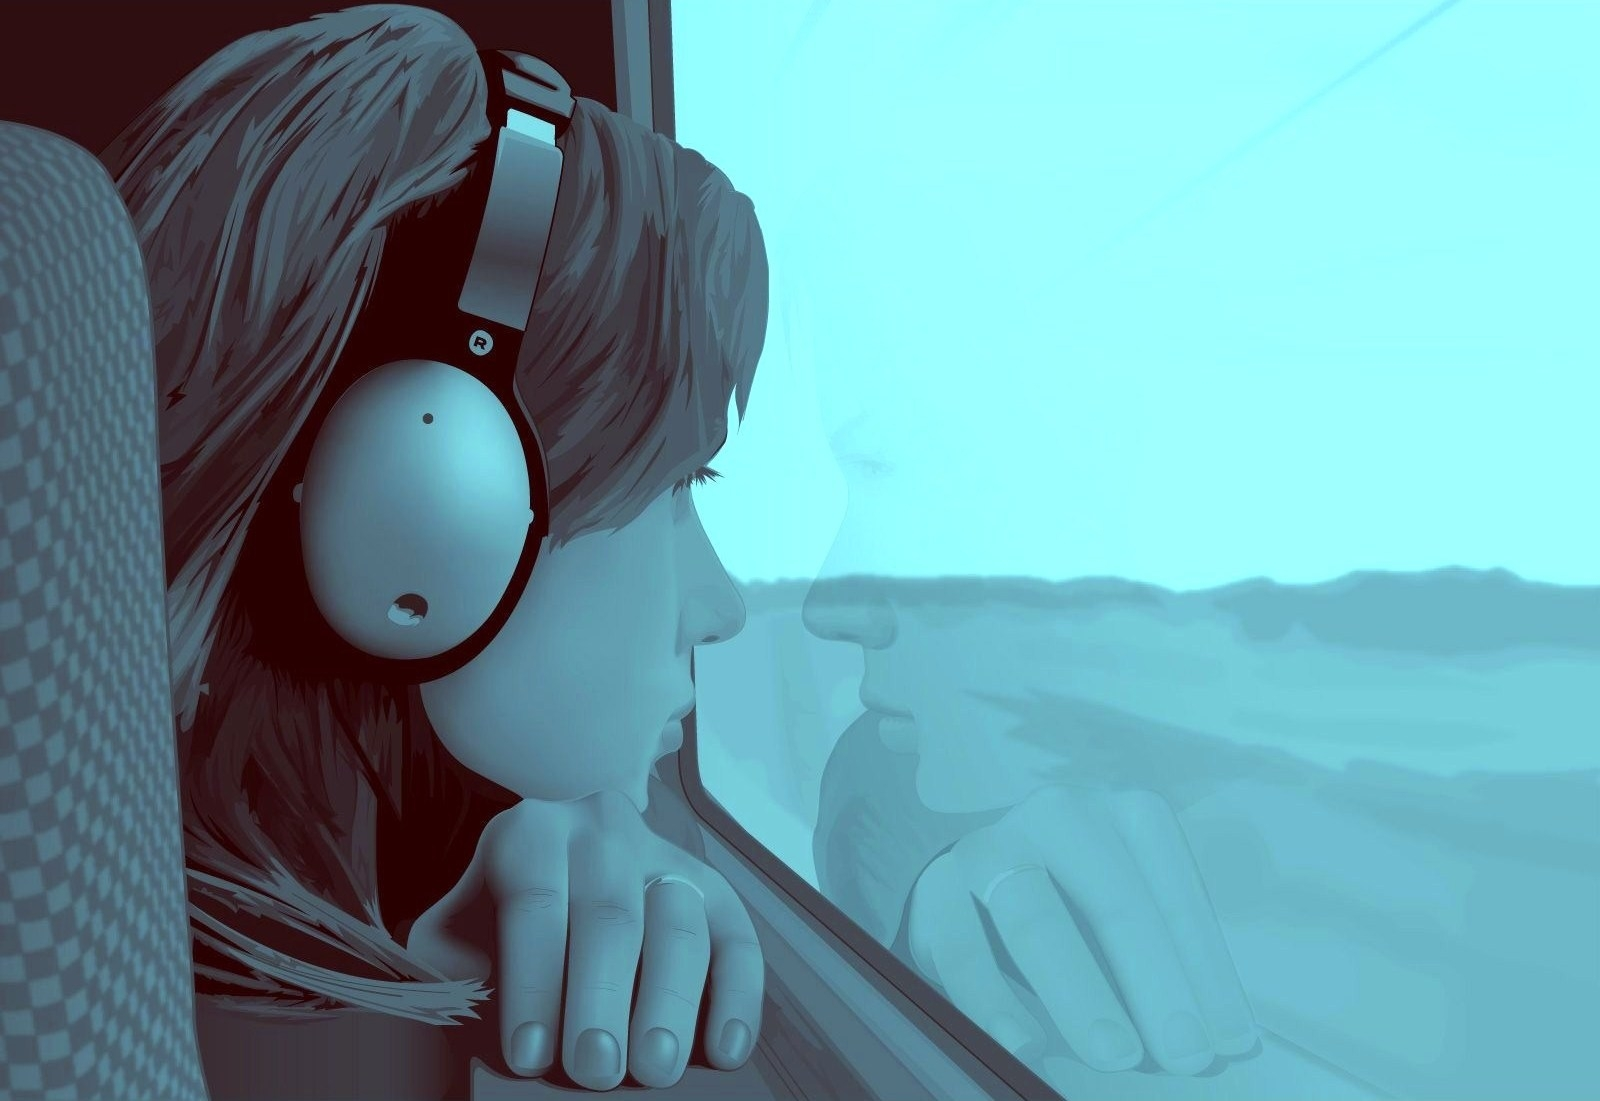 56822 Screensavers and Wallpapers Guy for phone. Download Headphones, Vector, Girl, Window, Loneliness, Guy pictures for free